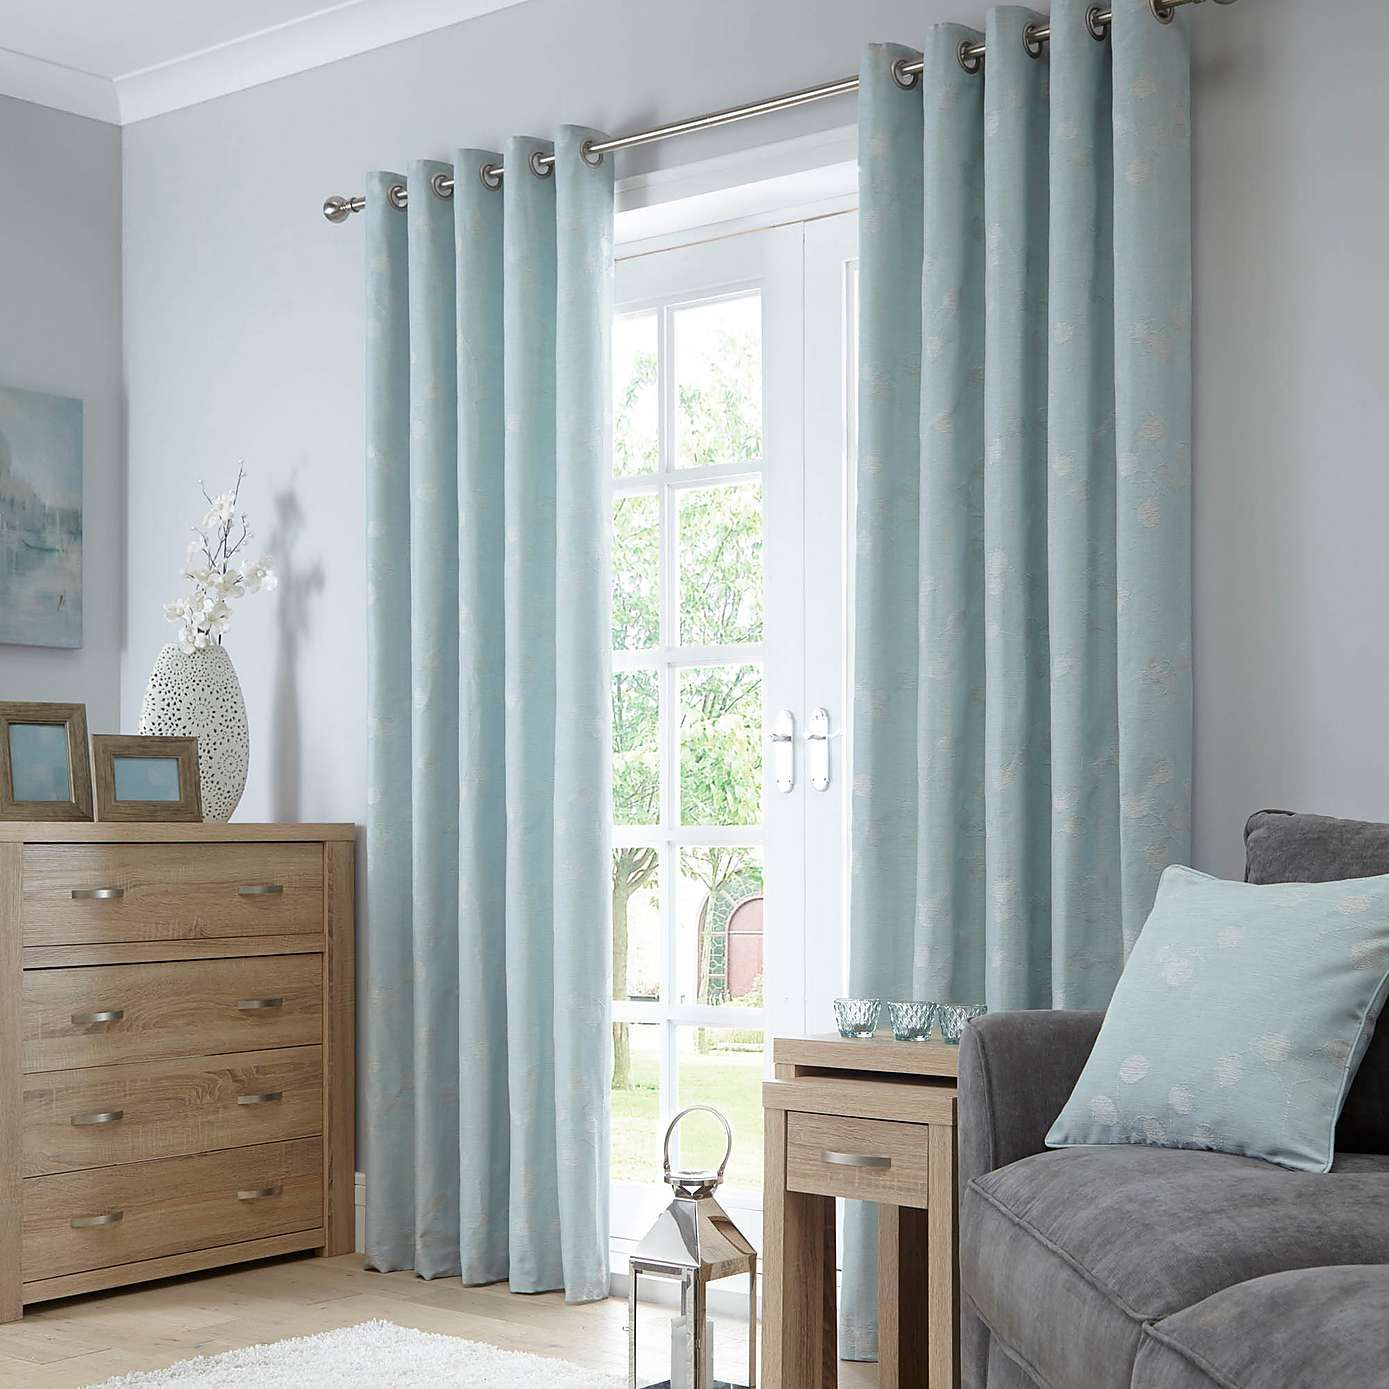 Honesty Seafoam Lined Eyelet Curtains | DWD Market Research 3 - Nov ...